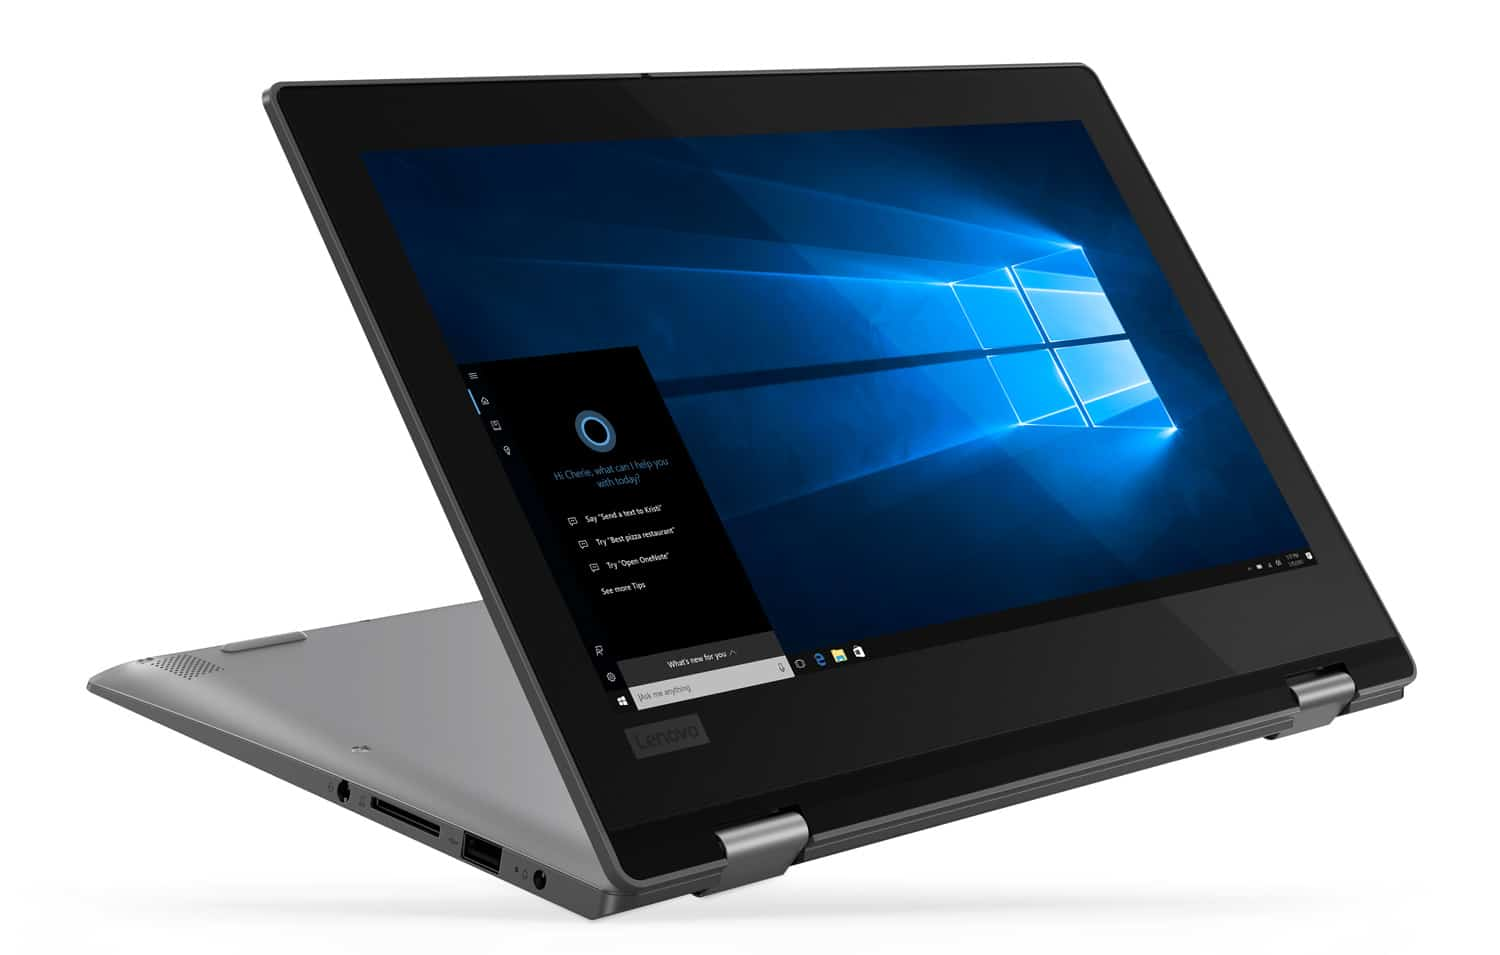 Lenovo Yoga 330-11IGM, 11 pouces Tablette tactile Gemini Lake SSD à 399€